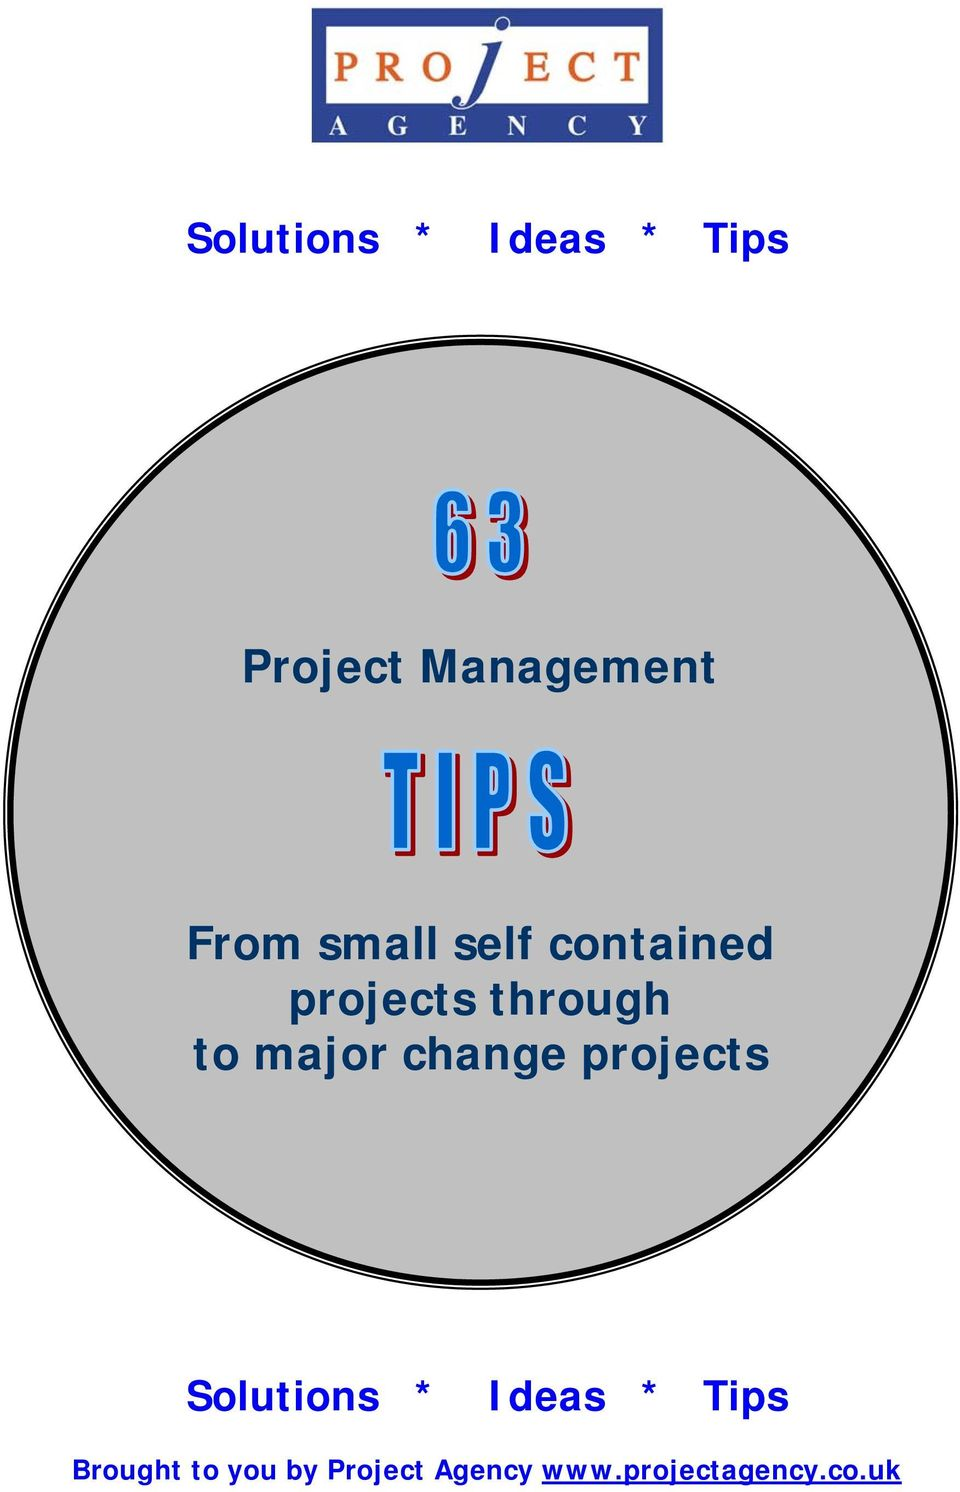 change projects Solutions * Ideas * Tips Brought